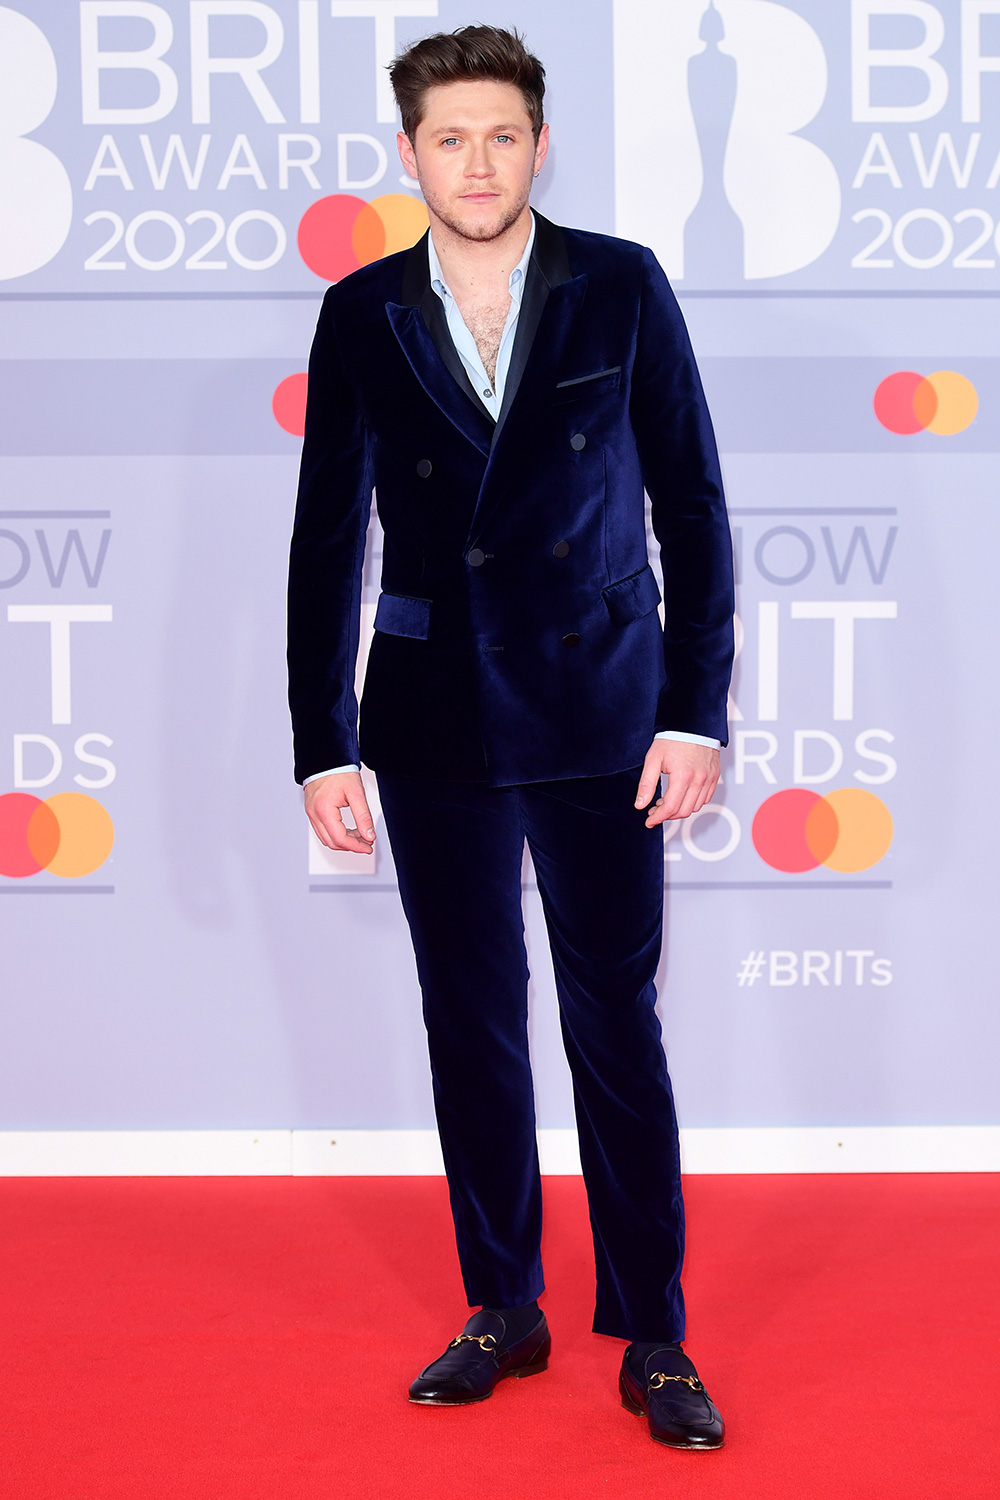 Niall Horan arriving at the Brit Awards 2020